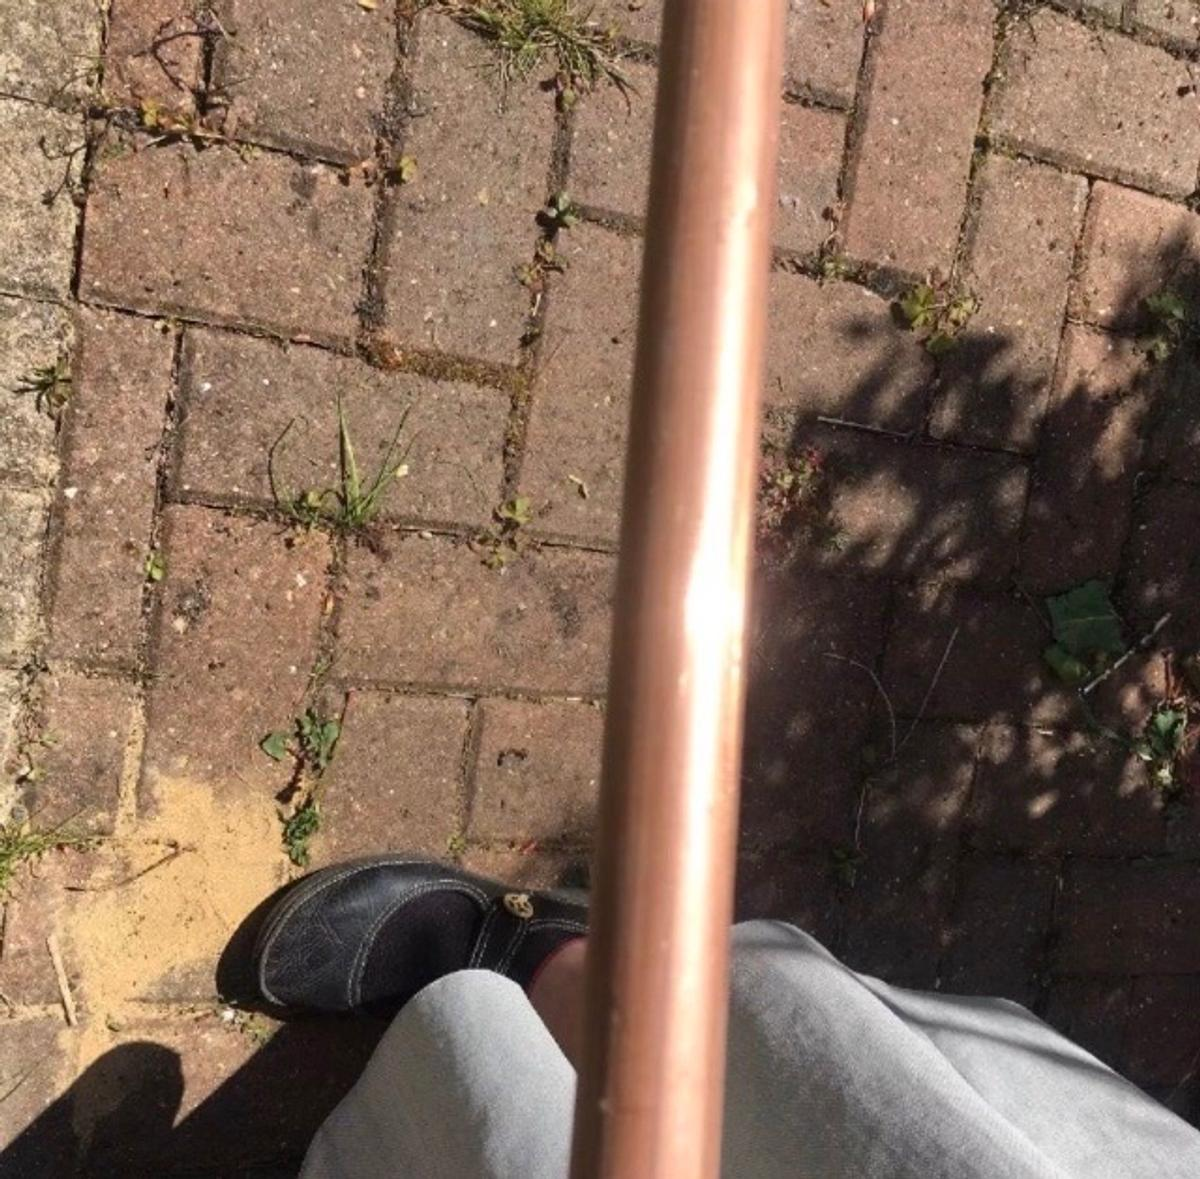 Copper Pipes 22mm 3 meter Lengths x 12  X 12 copper pipes  22mm diameter.  Brand new.  Unused.  Kept in dry storage.  Collection only.